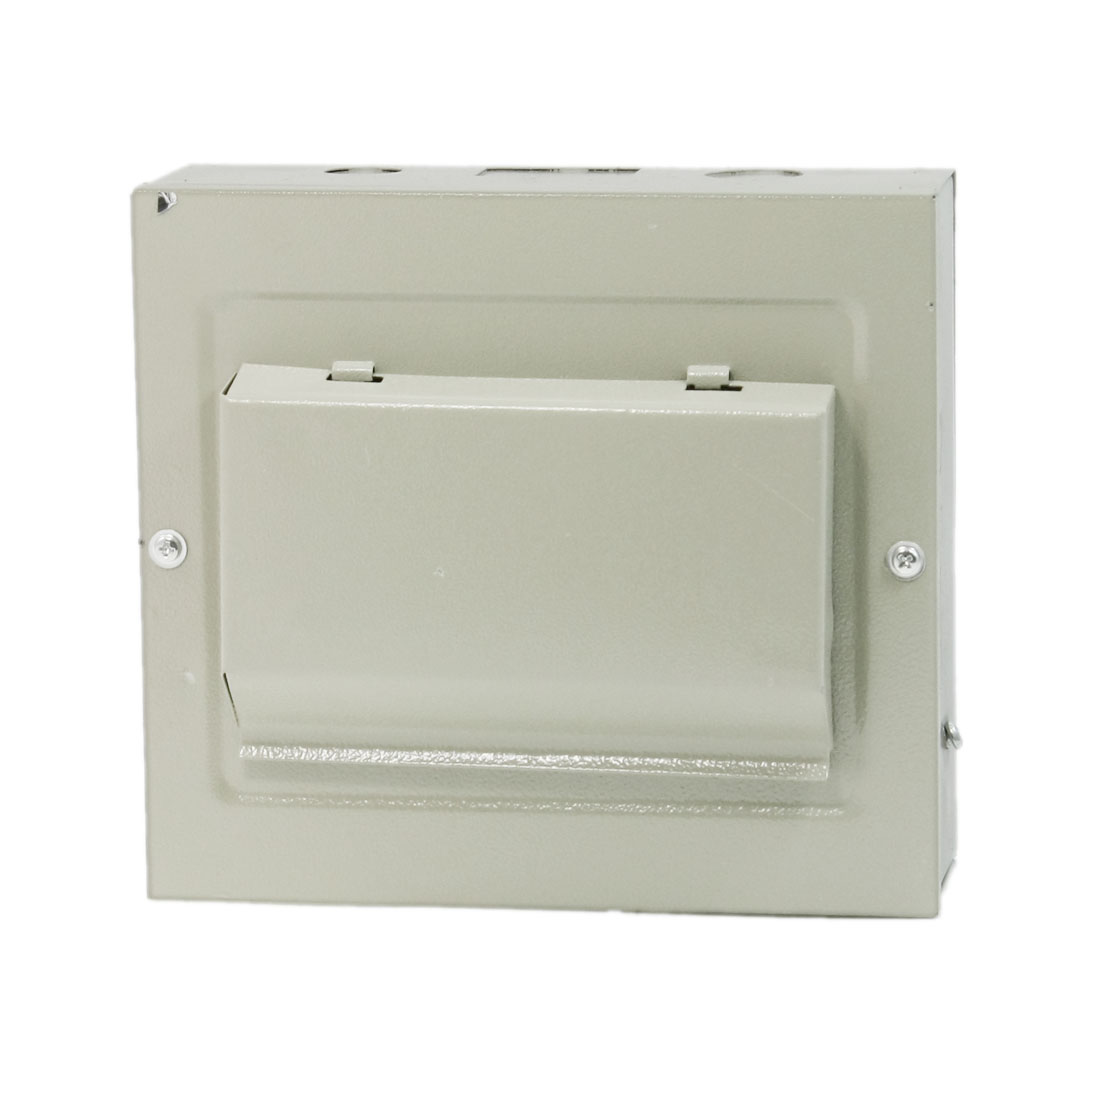 Rectangular Gray Metal Power Supply Distribution Box Guard Cover for Building